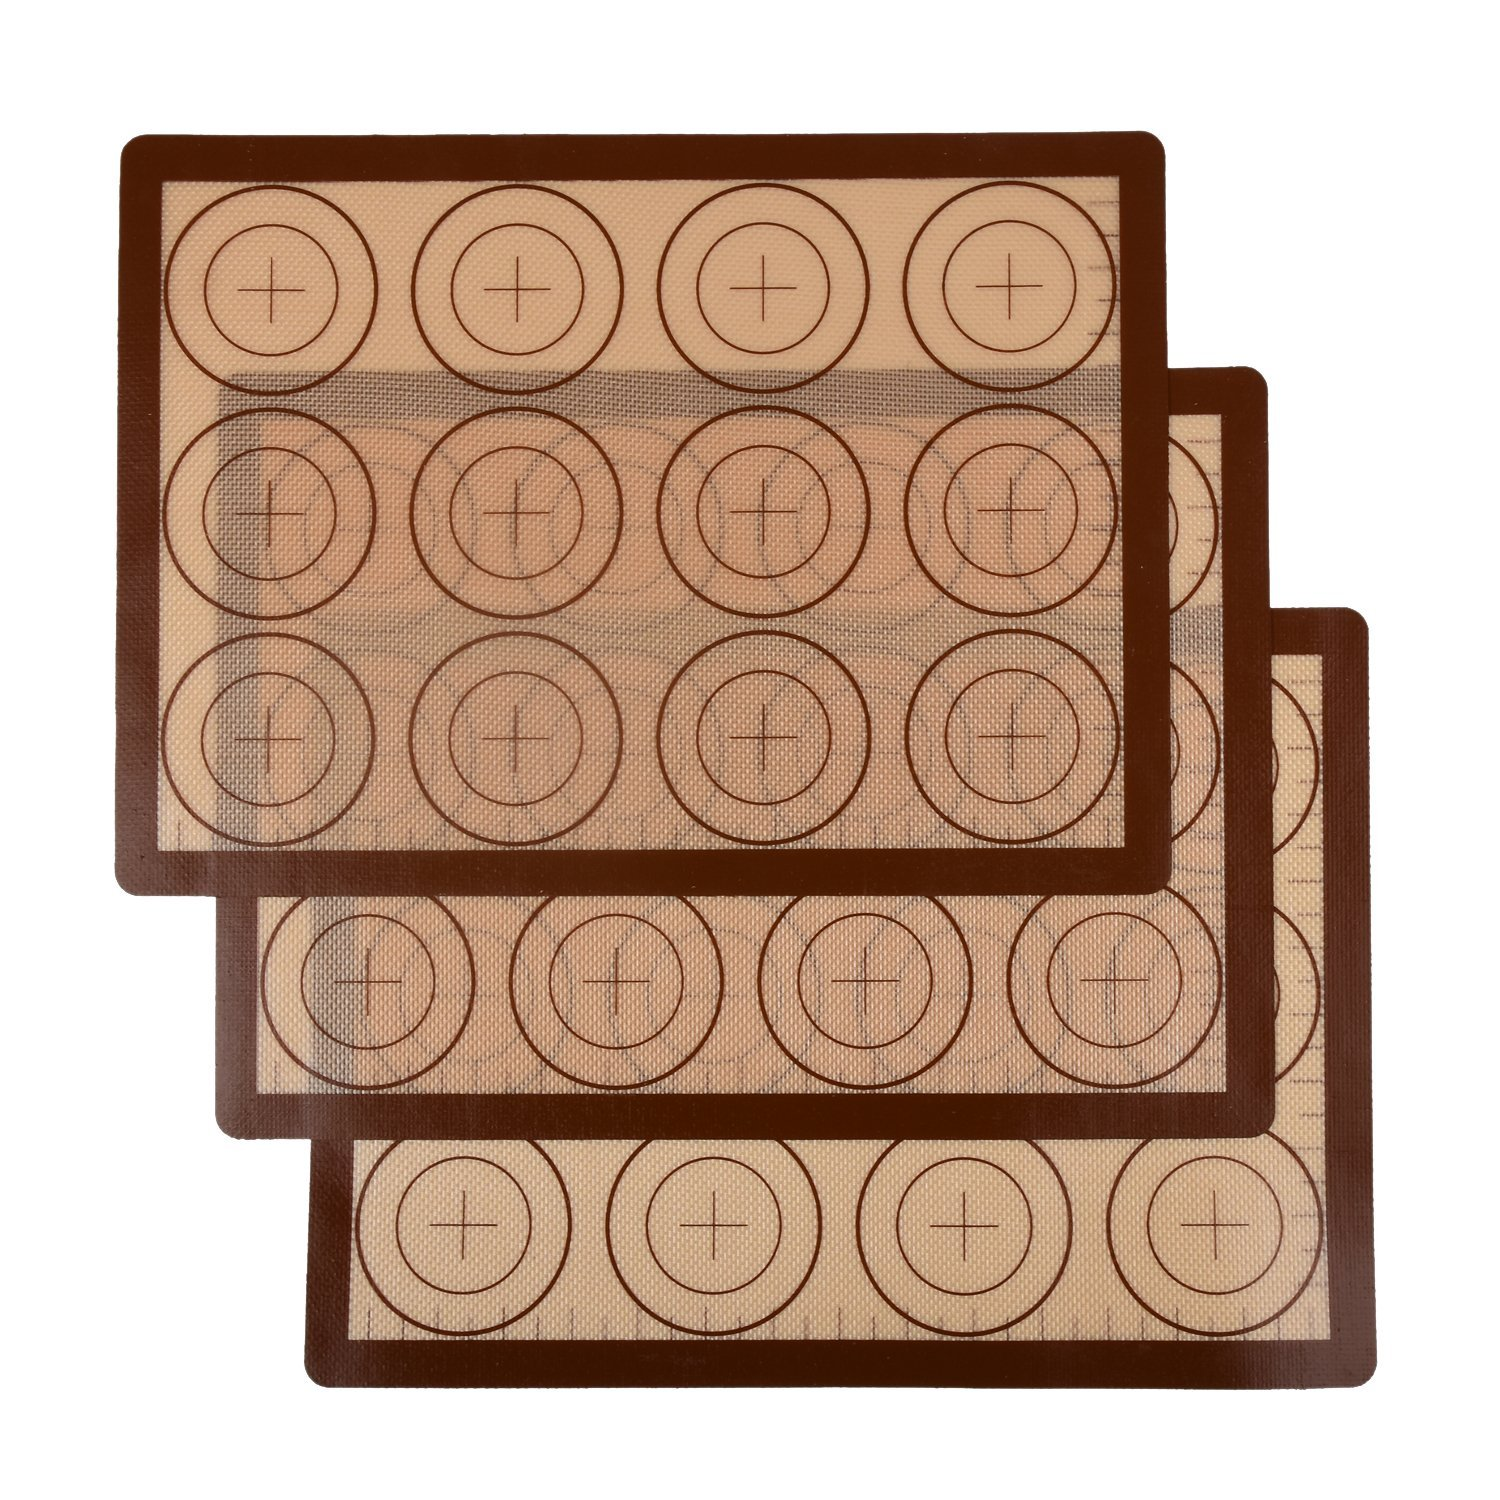 Seamersey Silicone Baking Mat Sheet Set - Set of 3 Sheet - Non-Stick Silicon Liner for Bake Pans & Rolling with Measurements - Macaron/Pastry/Cookie/Bun/Bread Making(16'' x 11.5'', Brown) by Seamersey